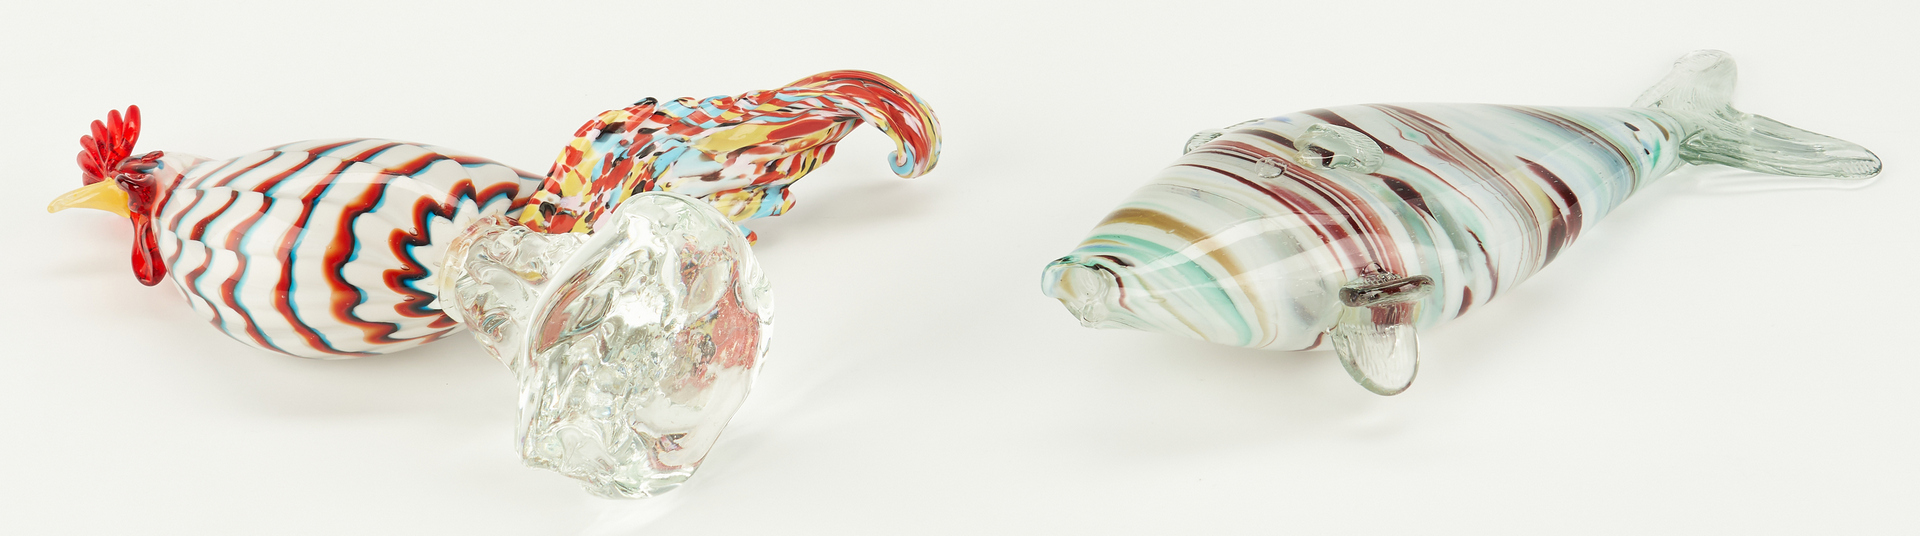 Lot 873: Murano Glass Aquarium, Rooster and Fish